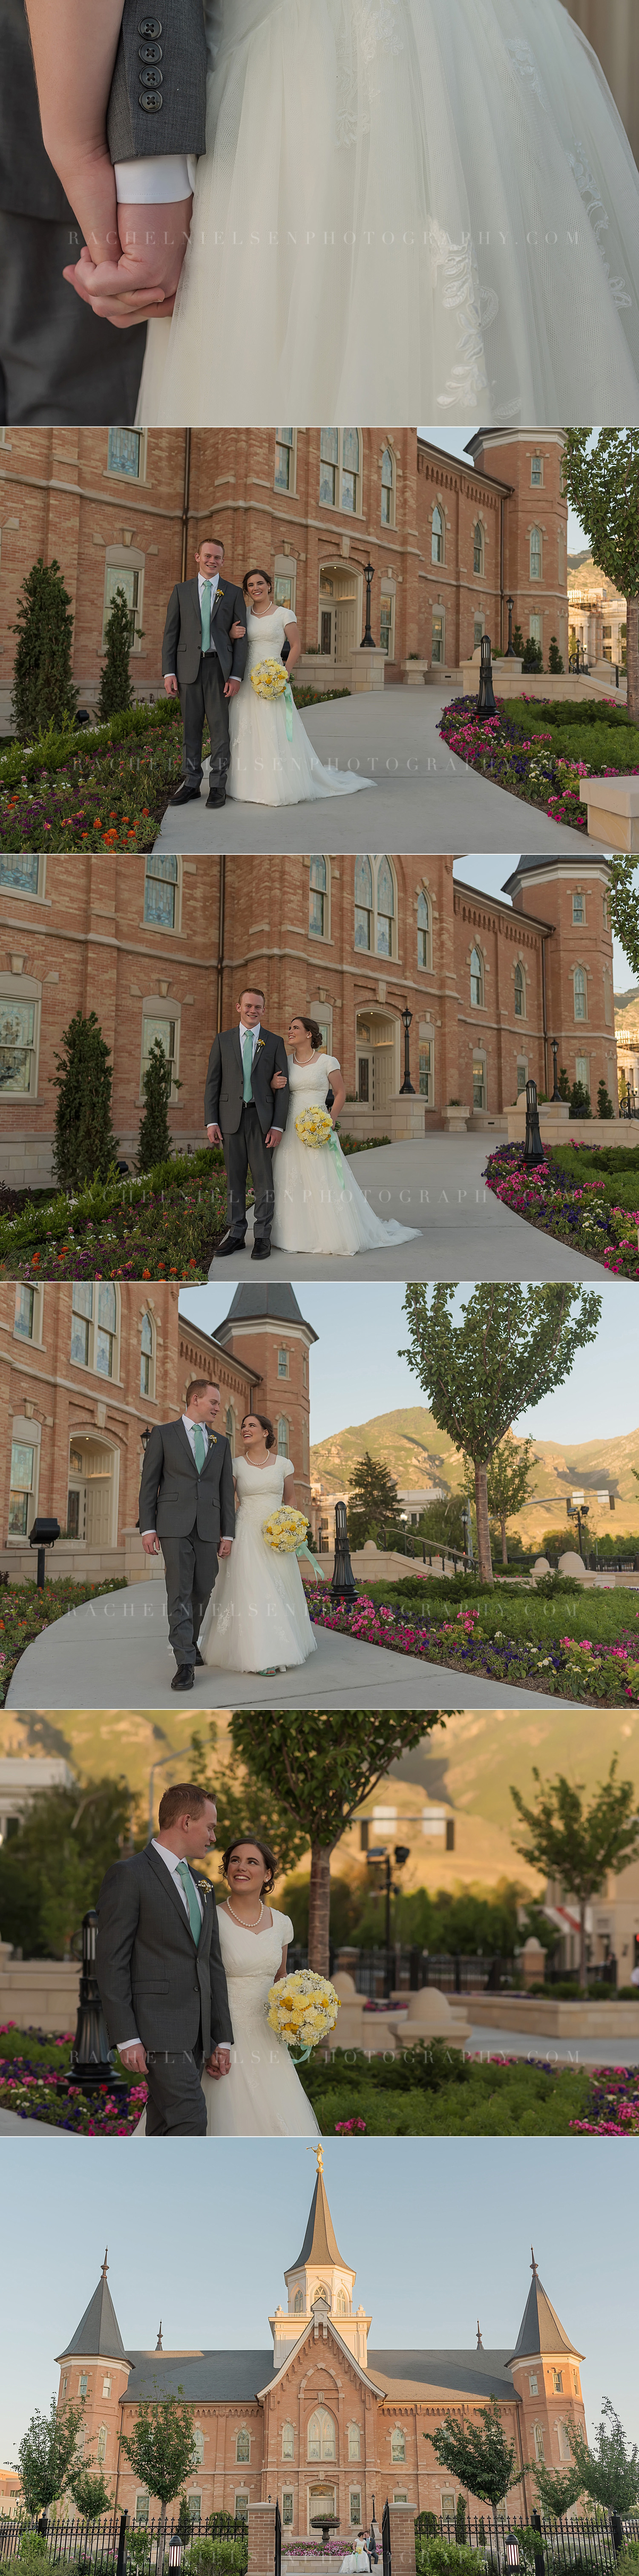 Provo-city-center-temple-wedding-15